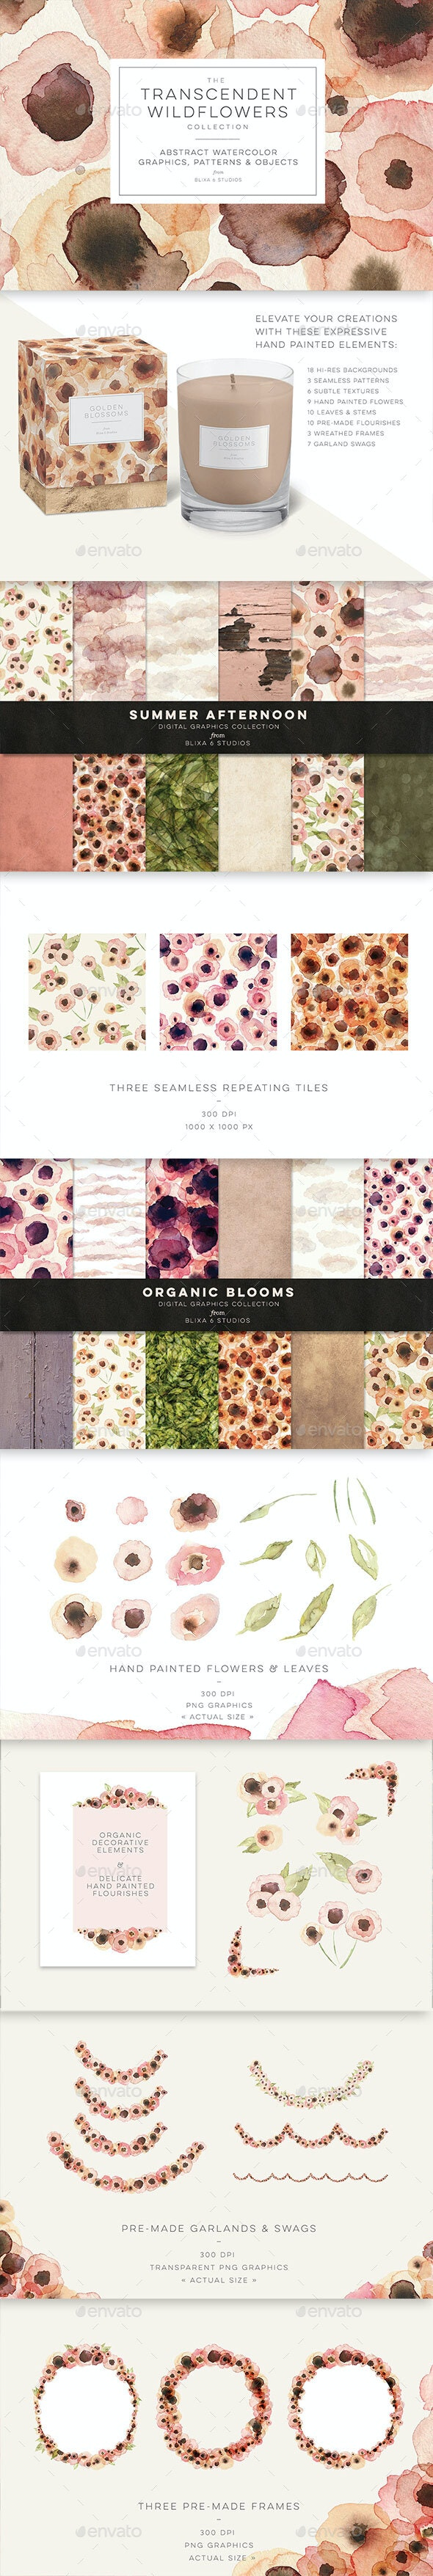 The Transcendent Wildflowers Collection of Digital Graphics - Nature Backgrounds